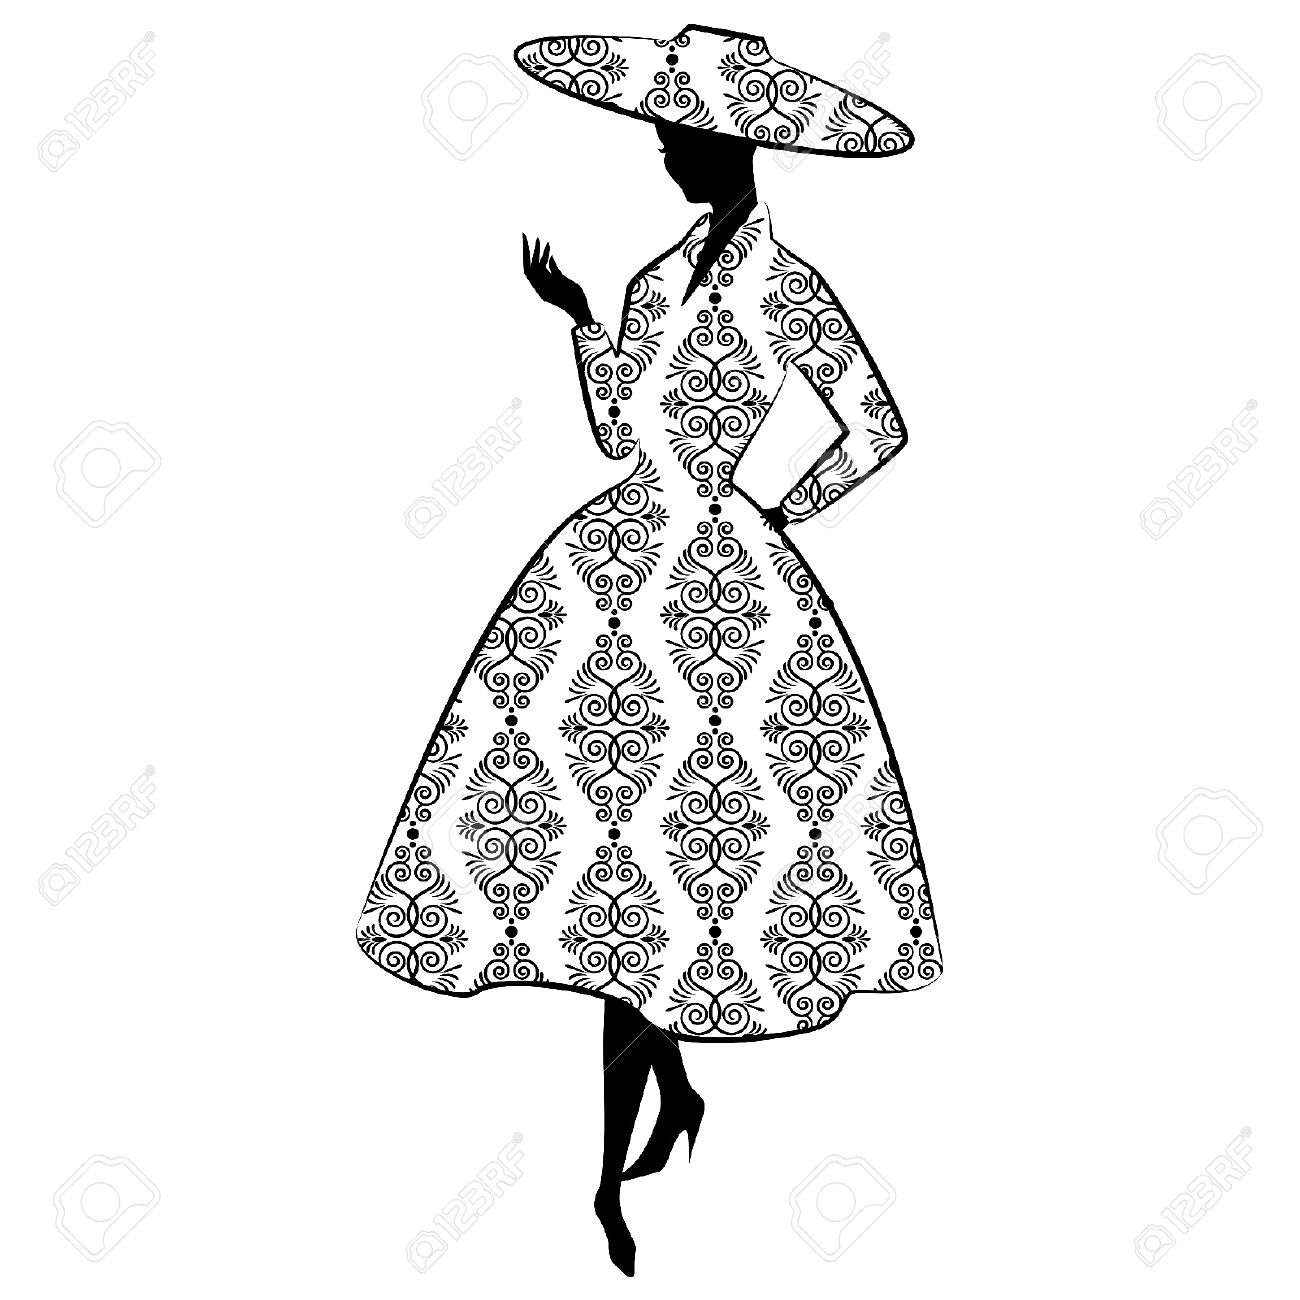 1300x1300 Vintage Silhouette Of Girl In Hat Royalty Free Cliparts, Vectors